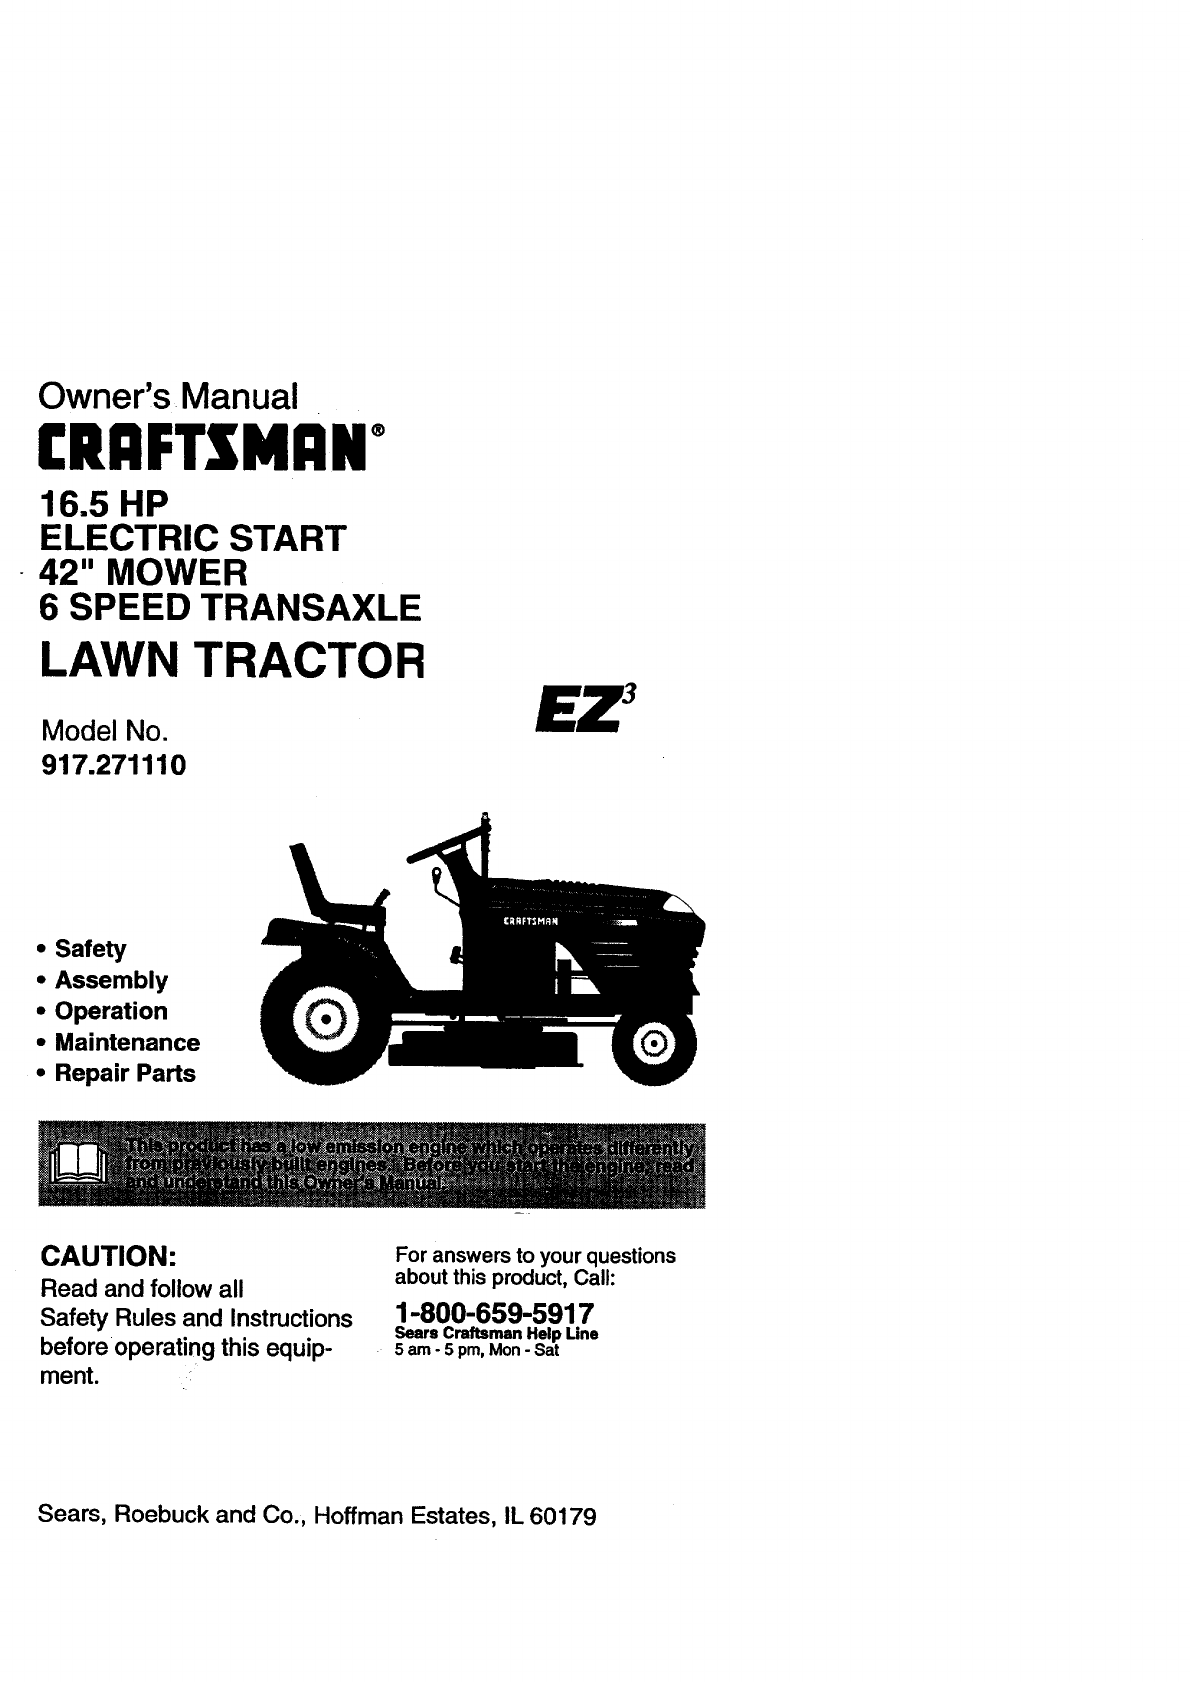 7a737f57 67af 49c5 a541 079cbf11b29b bg1 craftsman lawn mower 917 271110 user guide manualsonline com Craftsman Lawn Mower Won't Start at gsmx.co